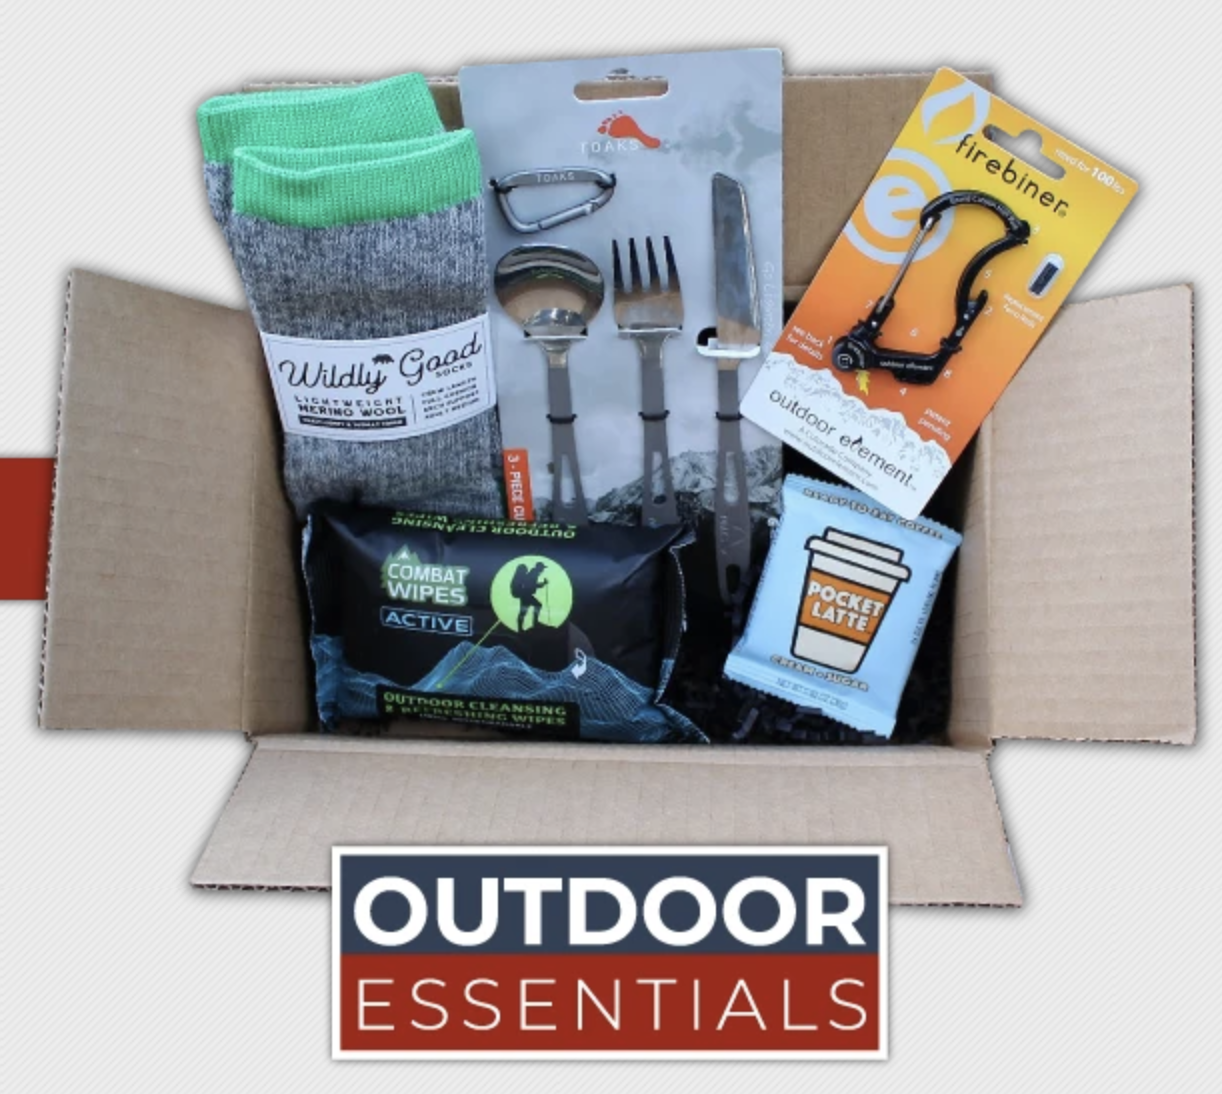 A top down of an open box stuffed with camping gear, like socks, utensils, wipes, and snacks